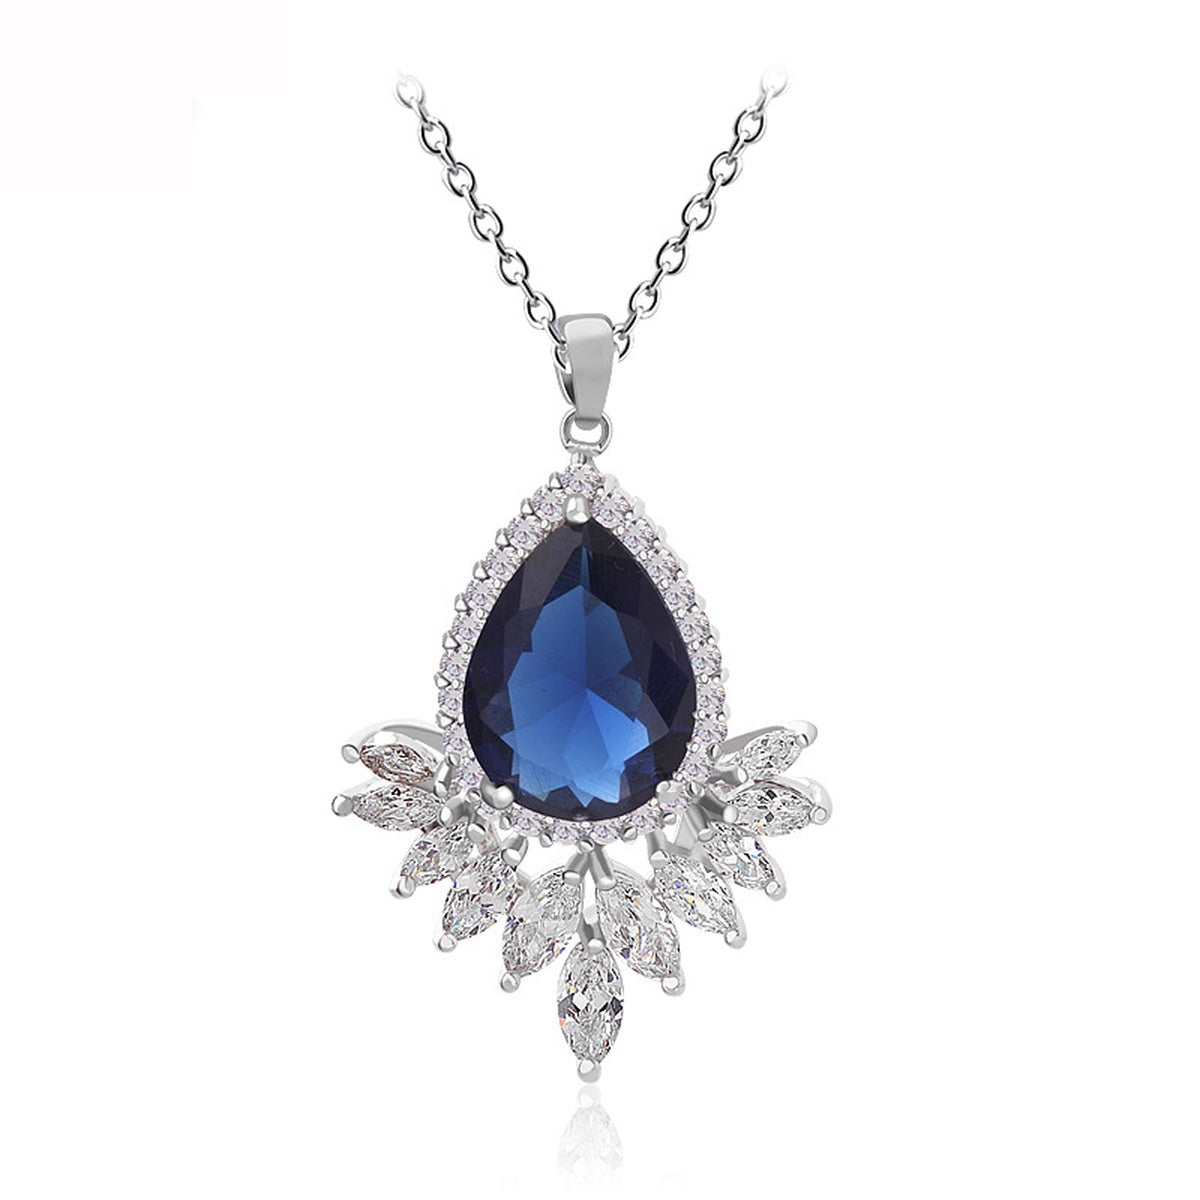 Simulated Sapphire Teardrop Necklace - GRACE BOUTIQUE UK women jewellery necklace earring bracelet ring broach scarf wrap shawl accessories